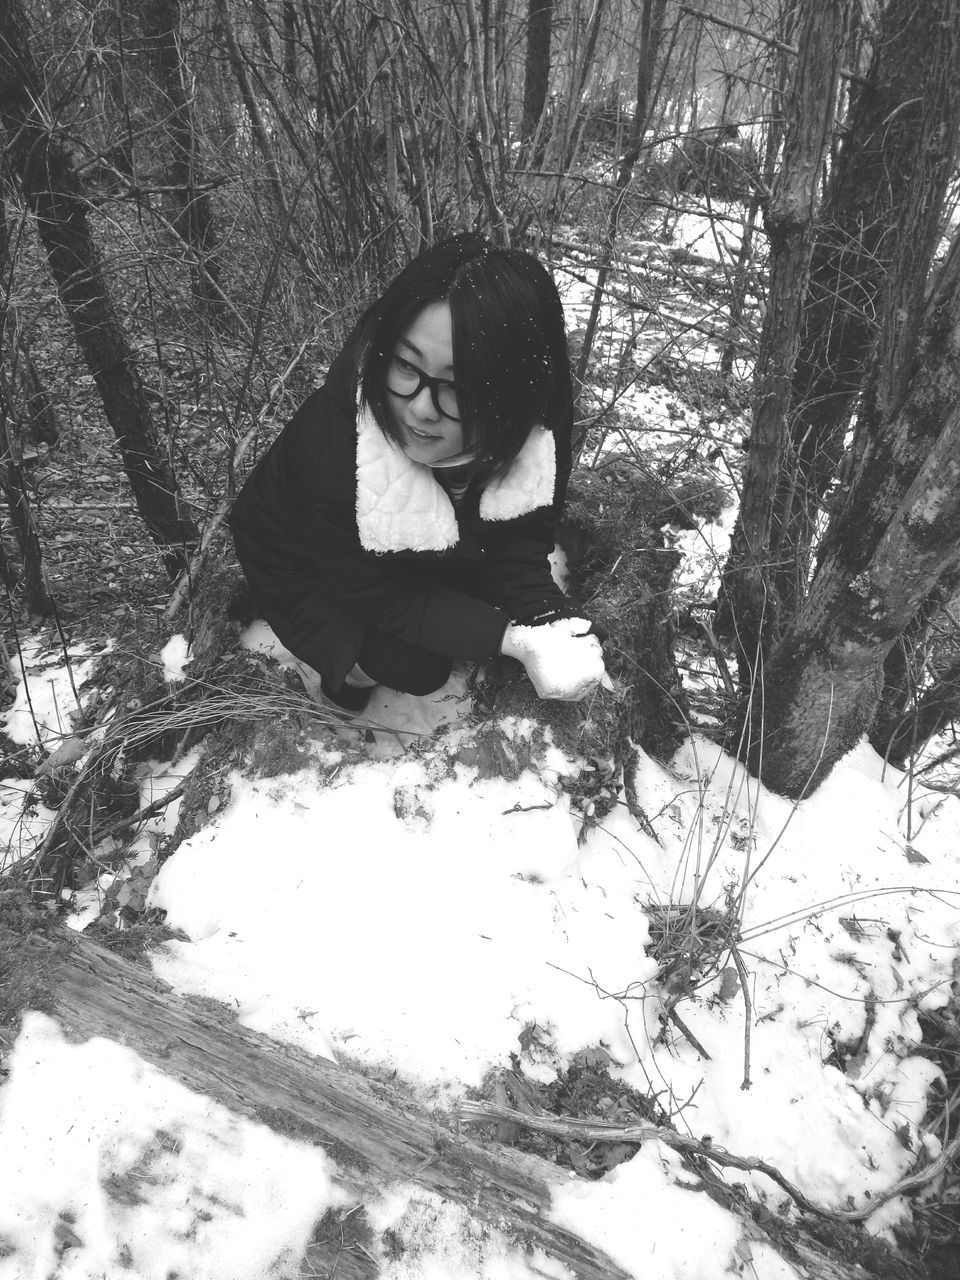 winter, tree, snow, one person, young women, nature, real people, cold temperature, forest, front view, young adult, leisure activity, outdoors, lifestyles, day, full length, sitting, branch, beautiful woman, warm clothing, people